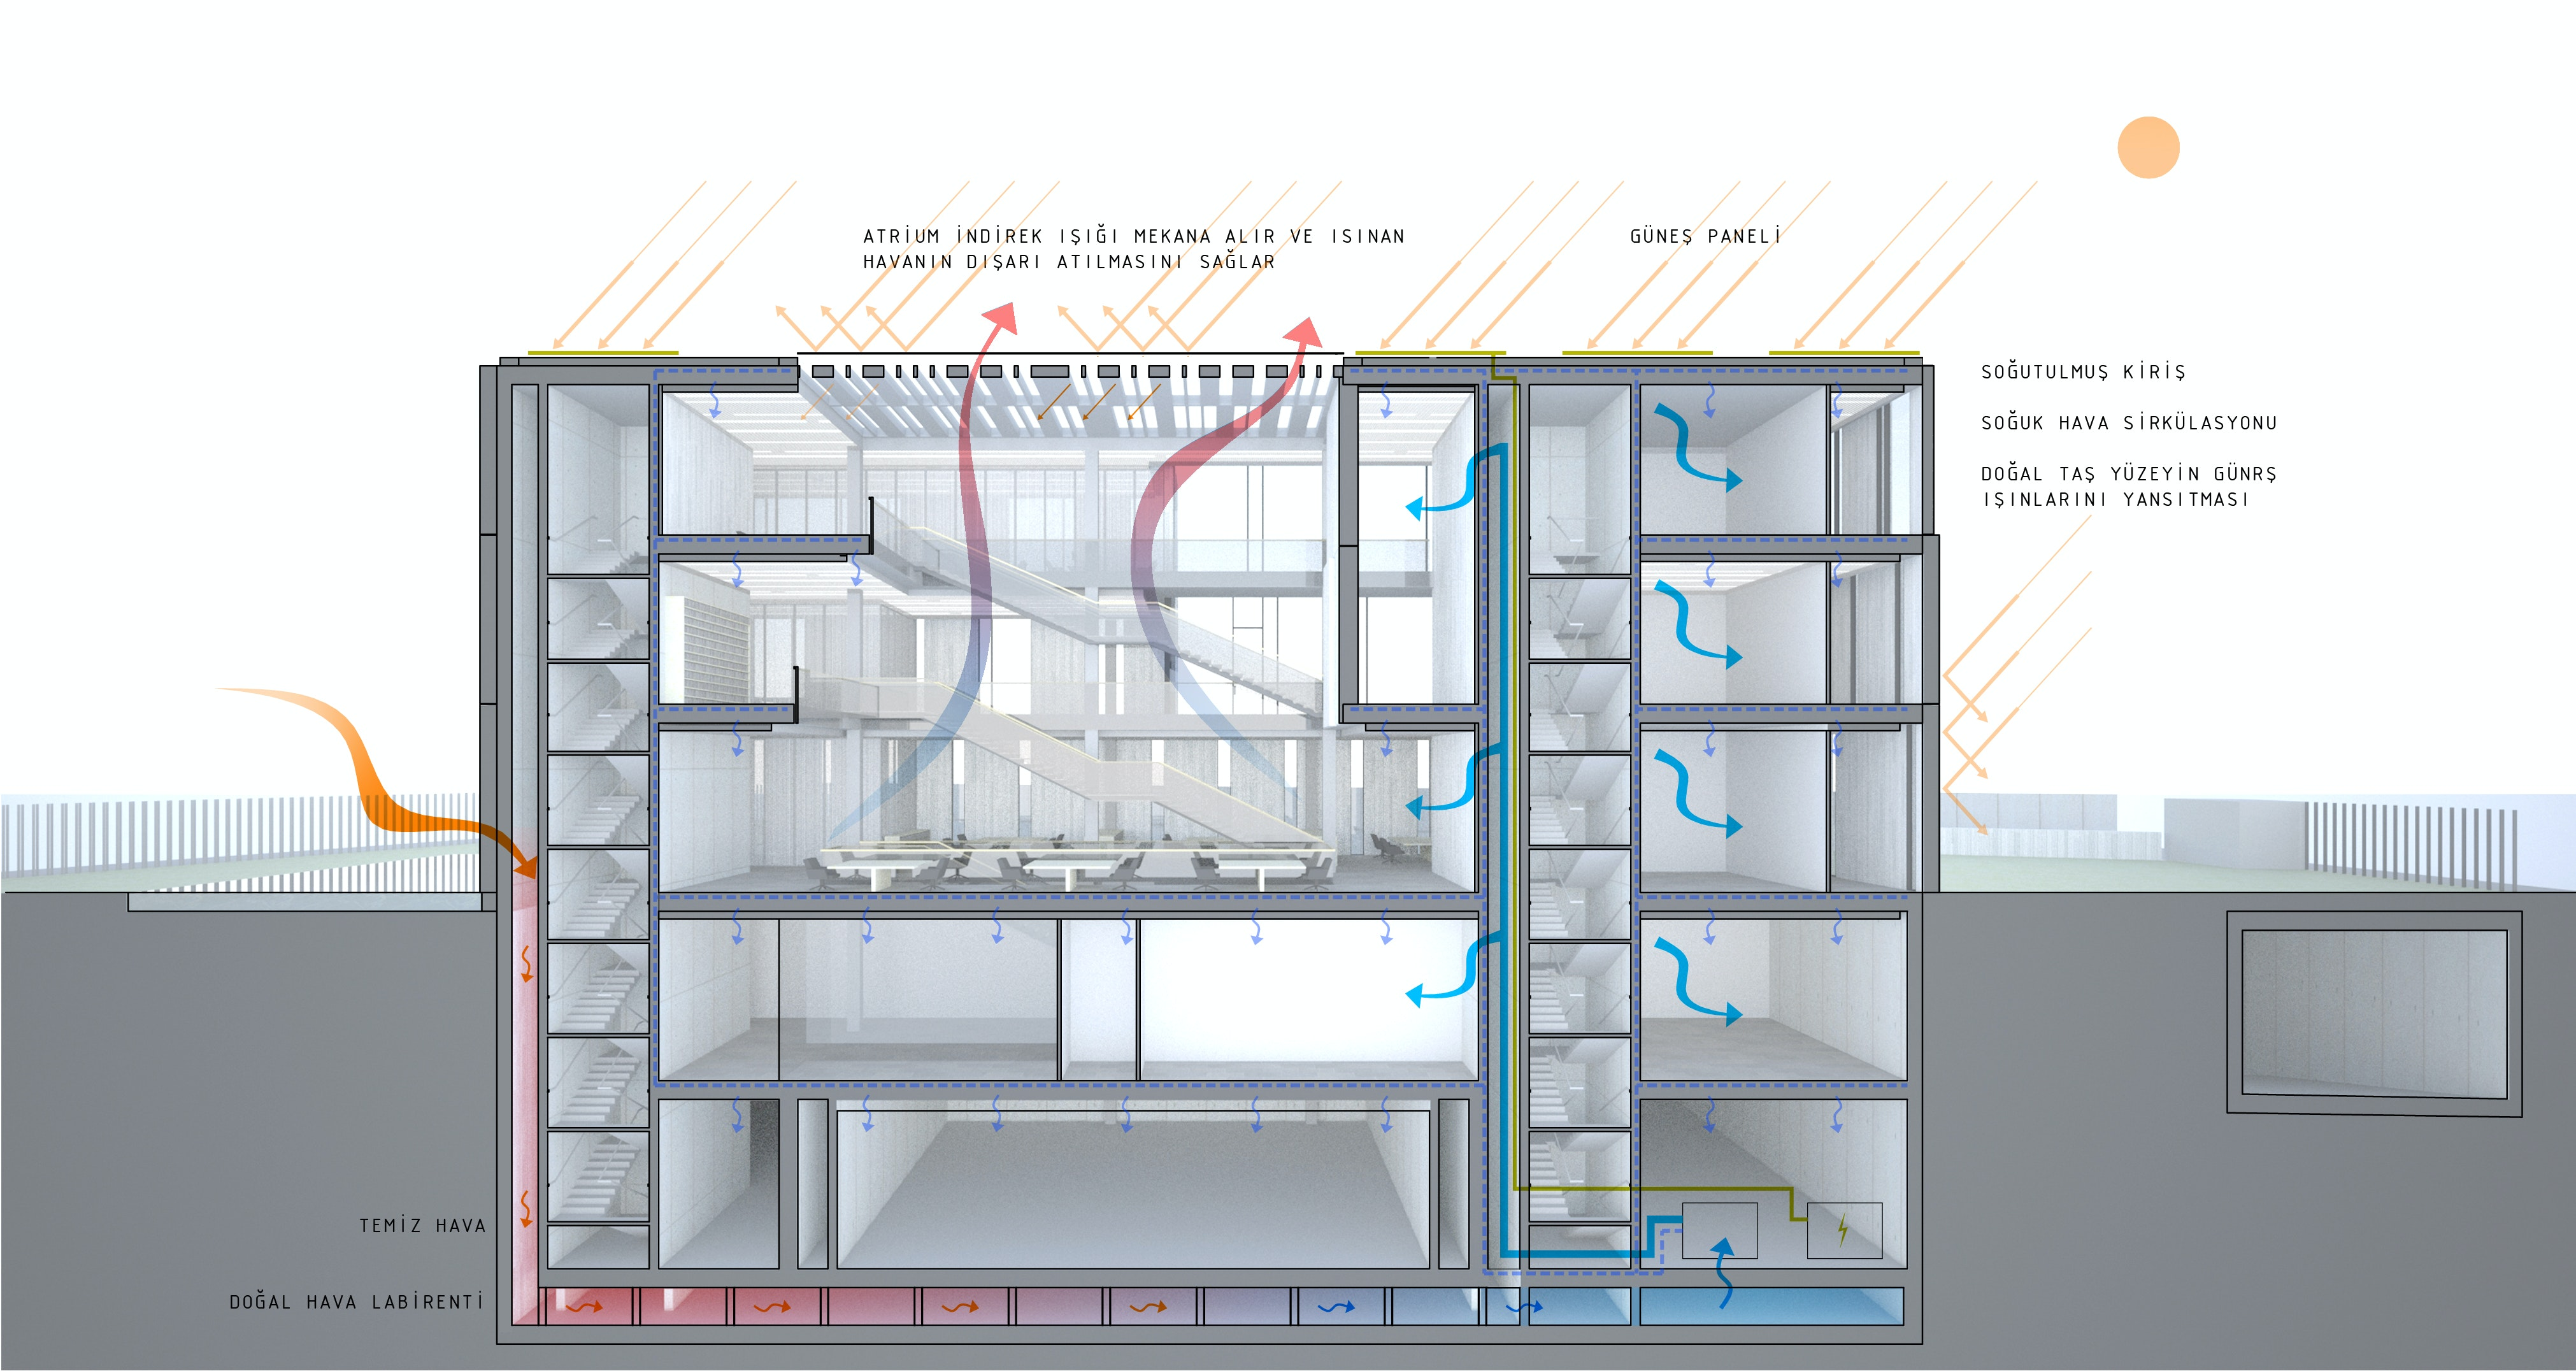 Energy Concept   Fresh Air Is Siphoned Through A Labyrinth In The Sub  Basement,